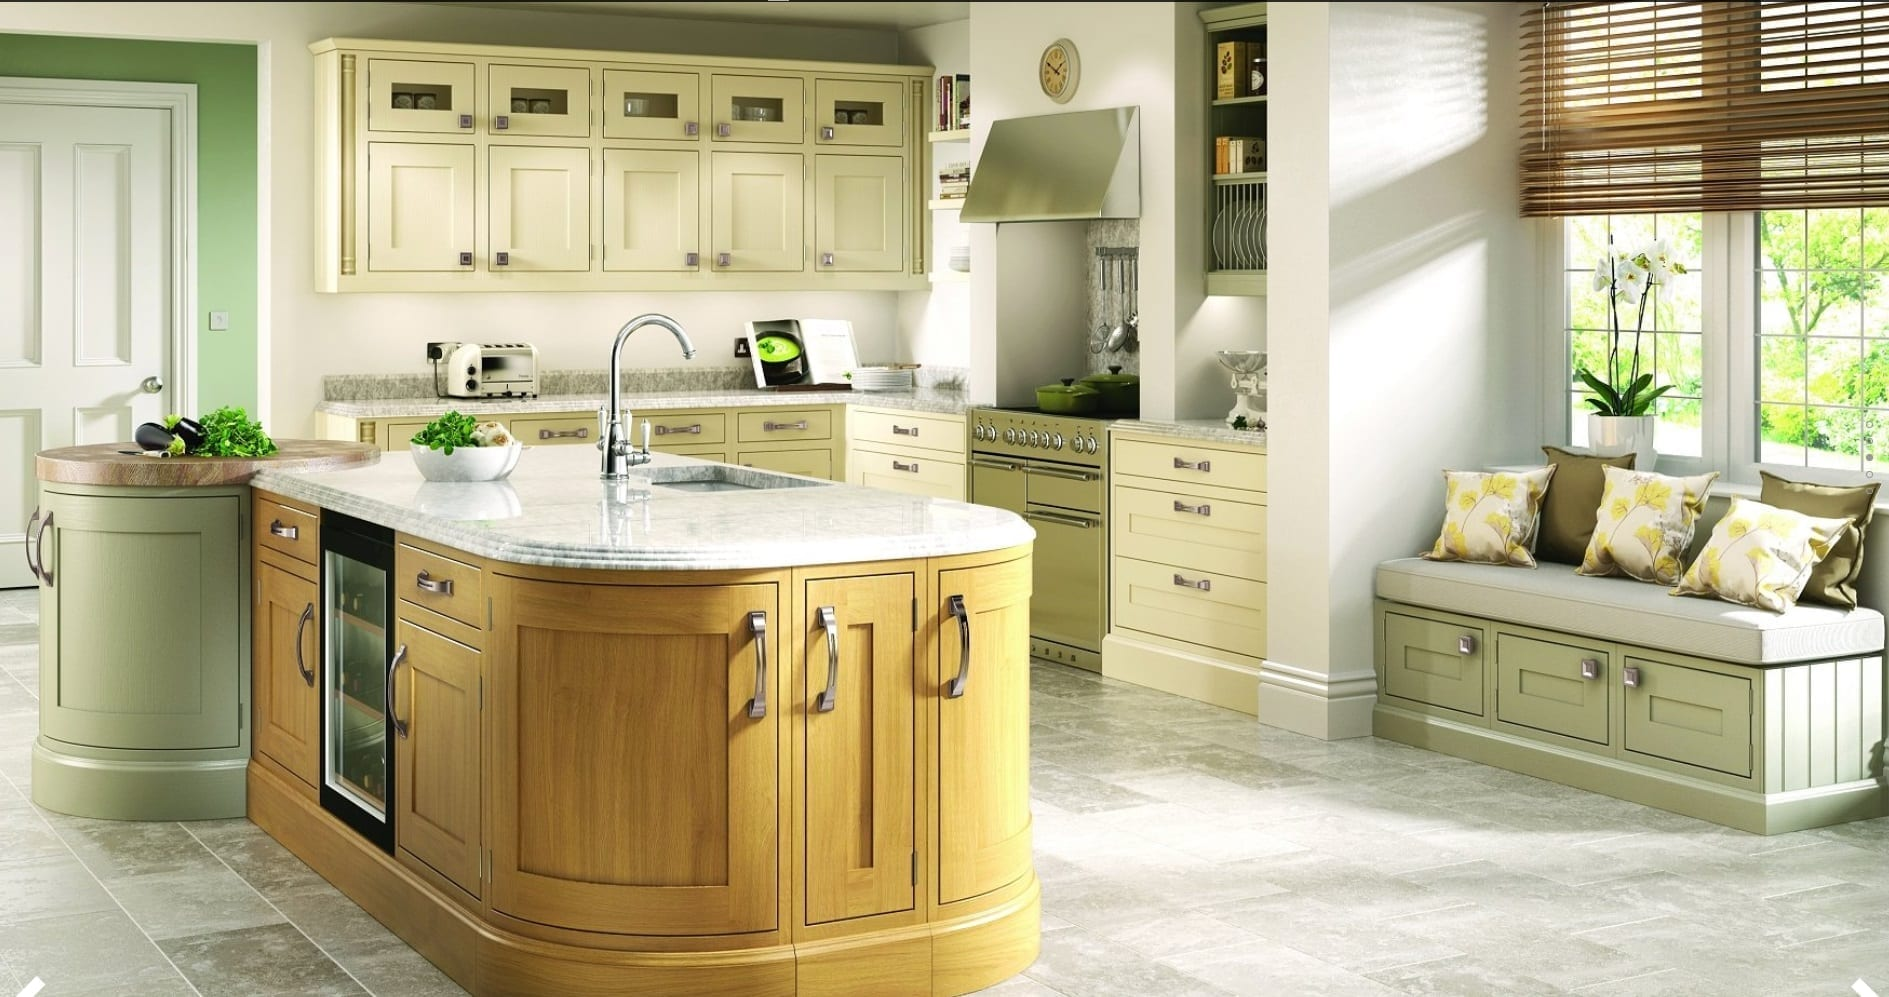 Luxury traditional inframe kitchens